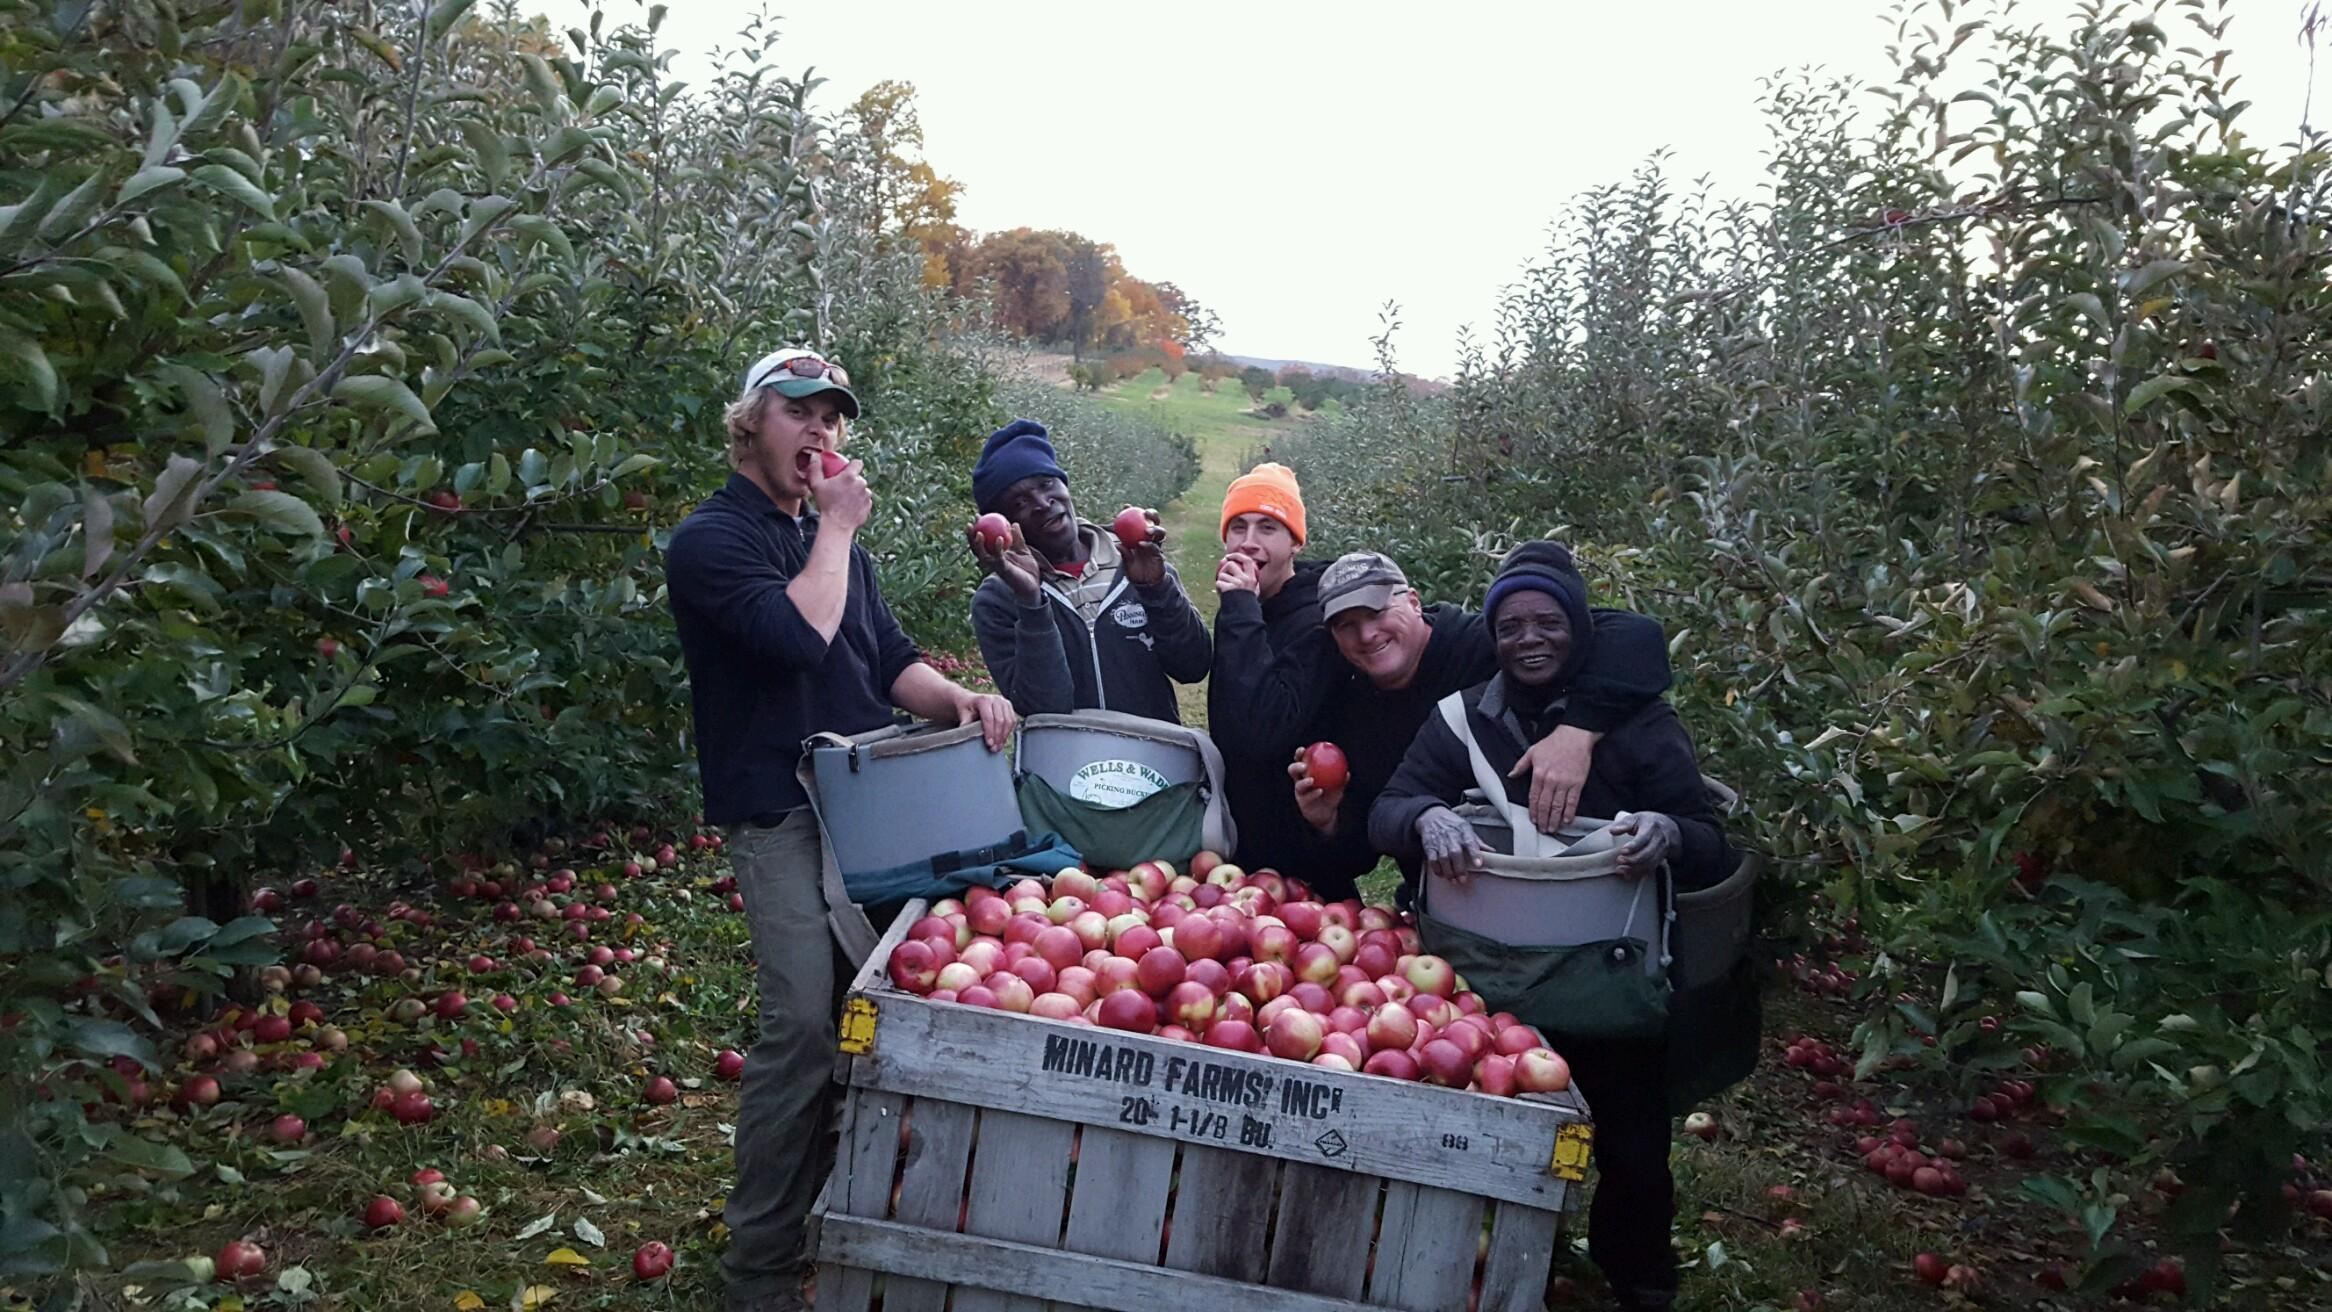 SJ and Stephen Pennings picking apples with employees